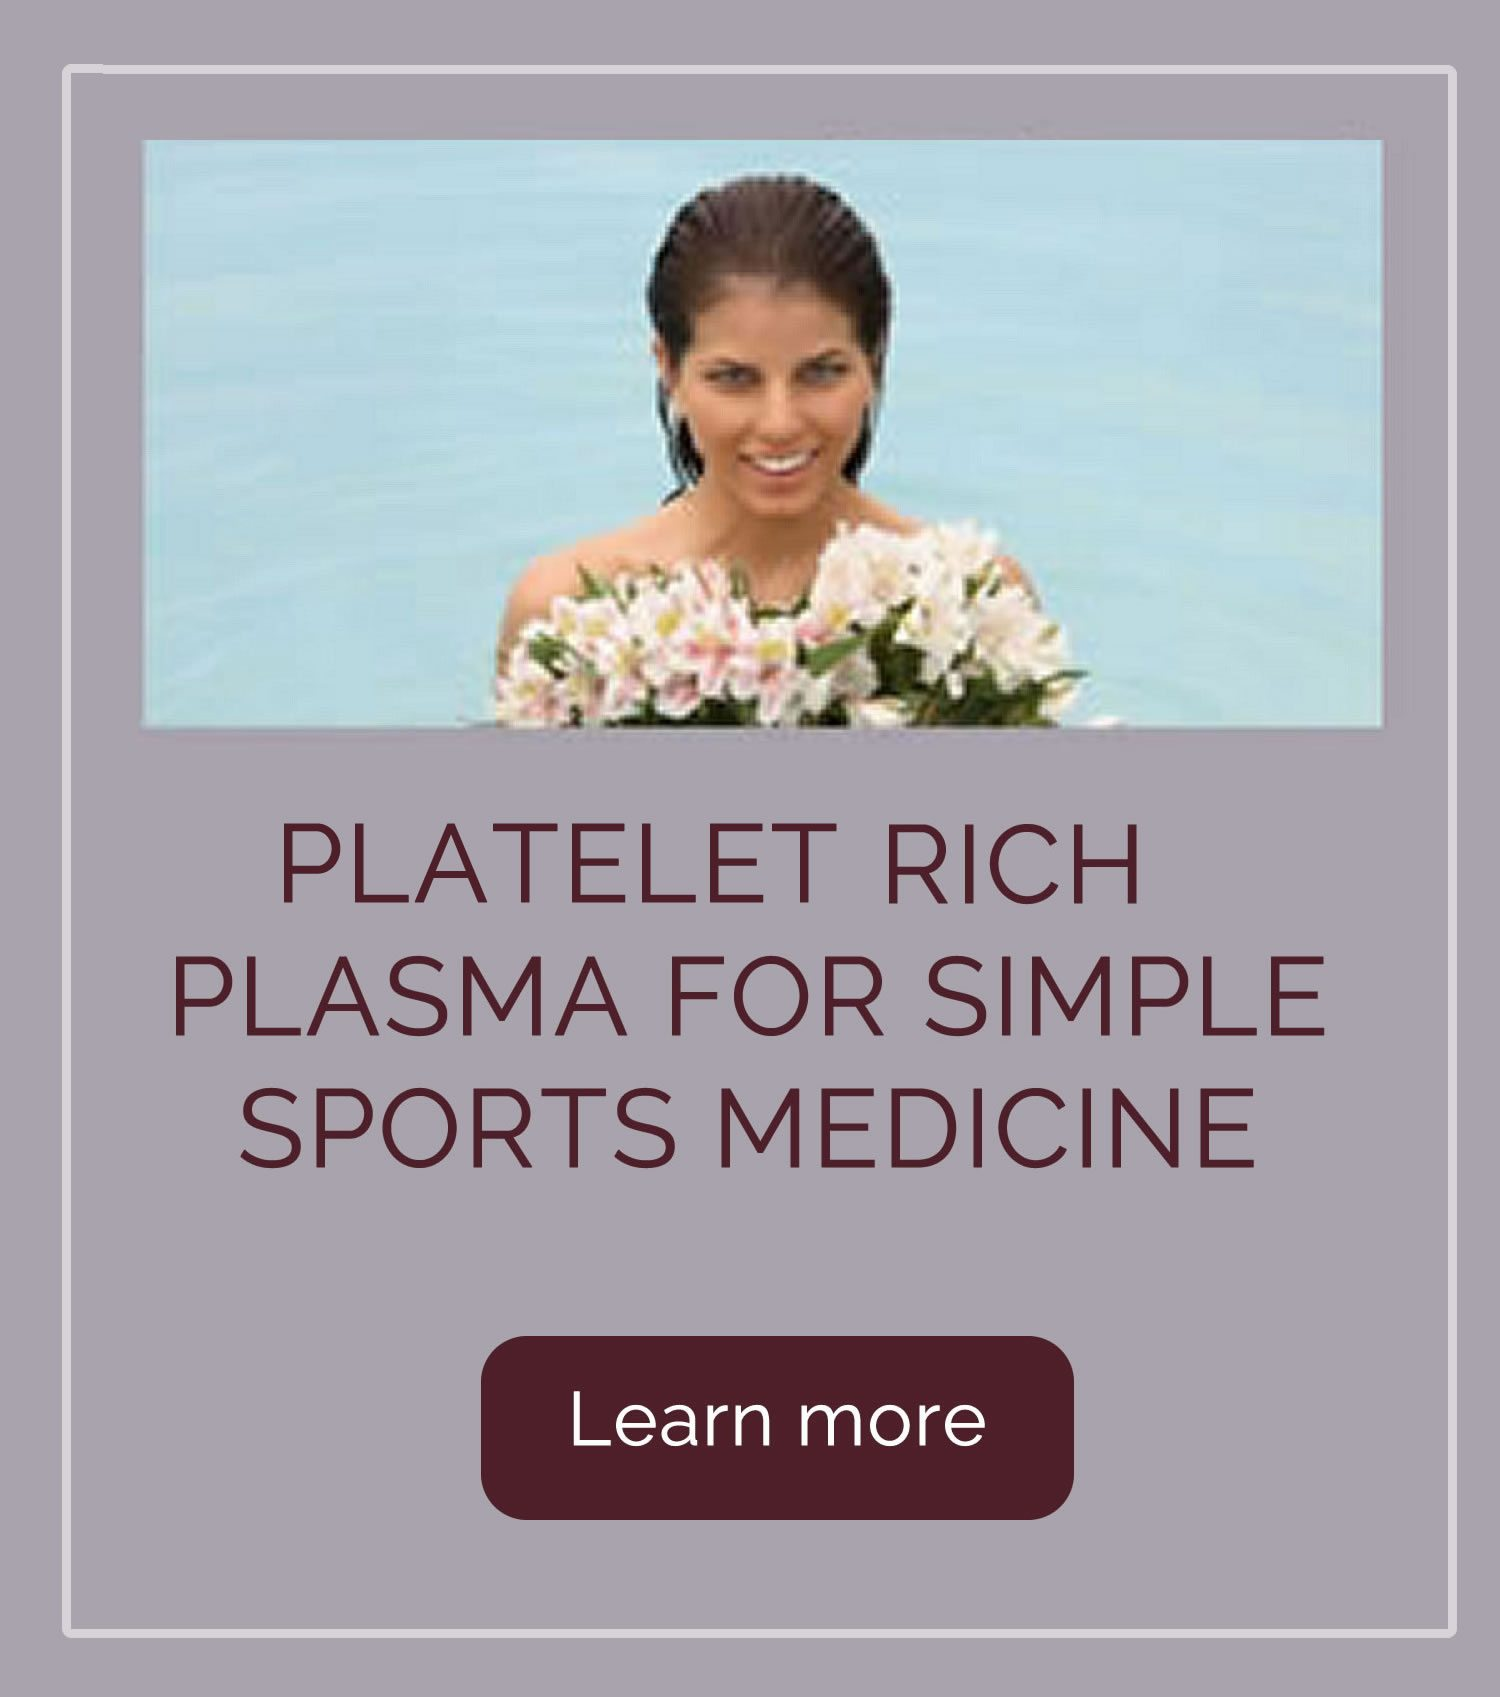 Platelet Rich Plasma for Simple Sports Medicine